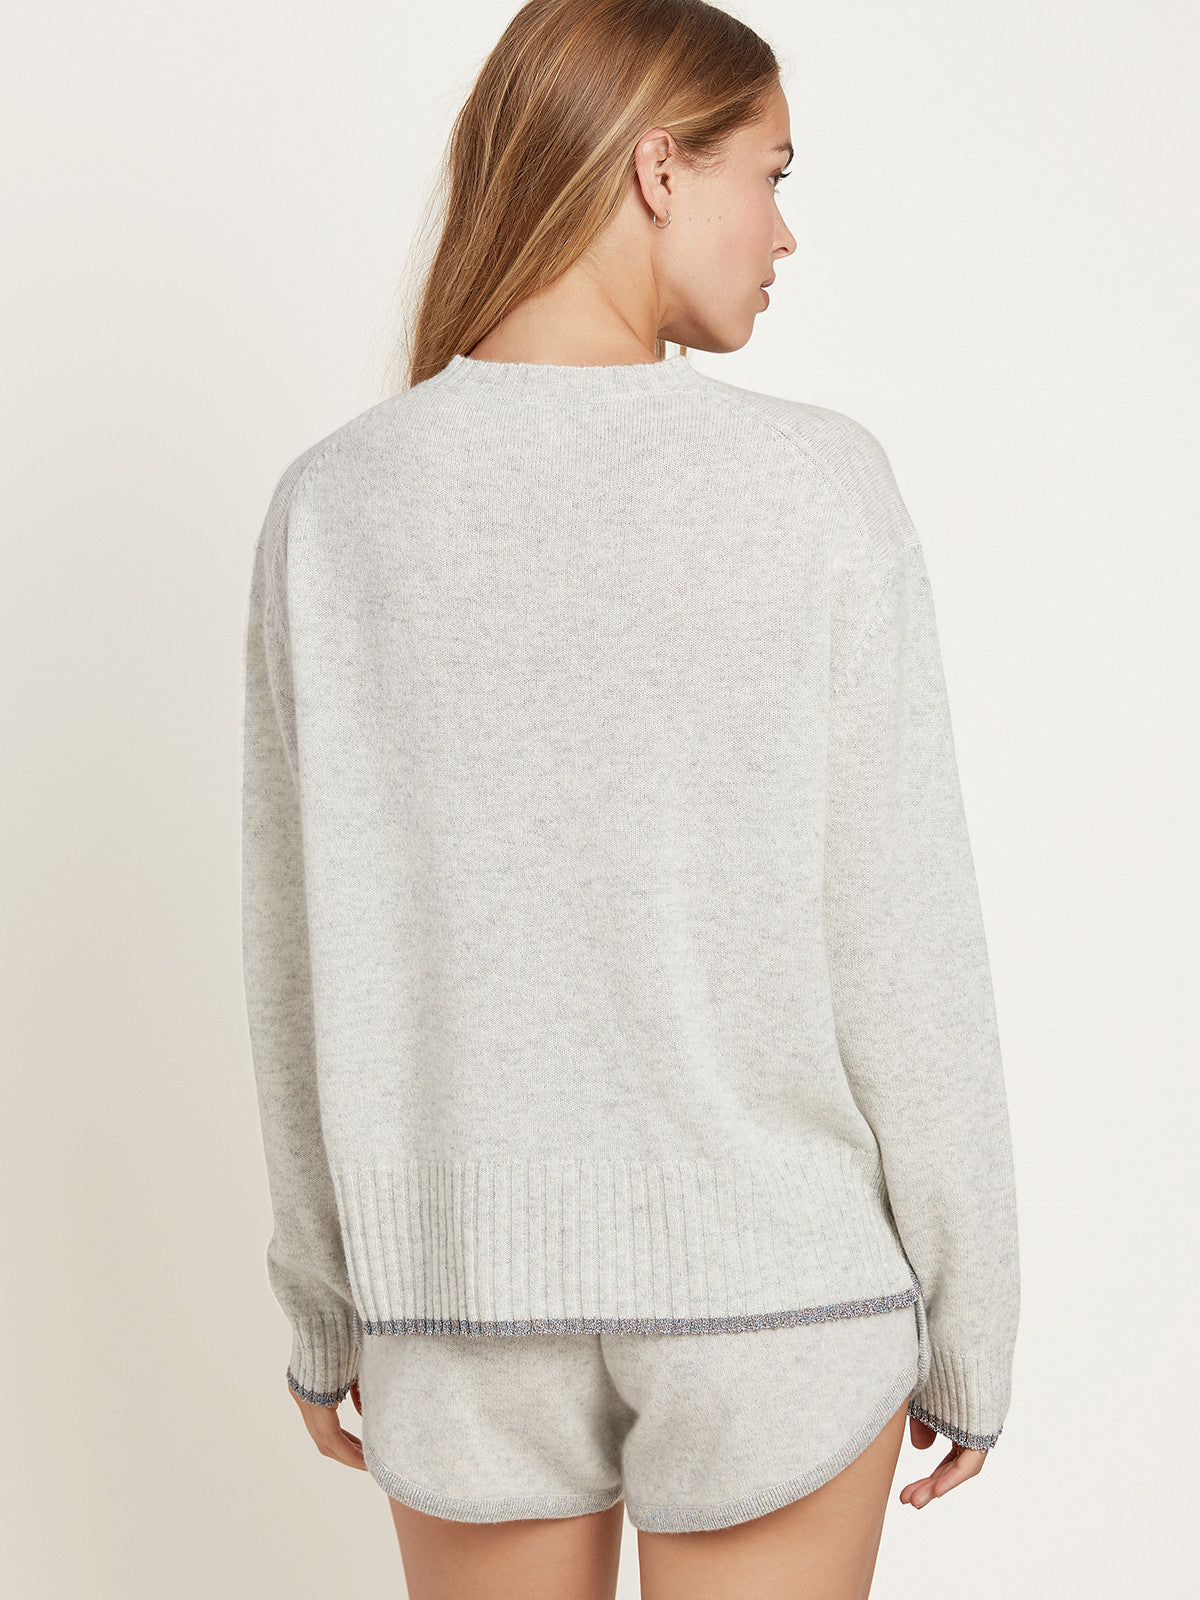 Charlee Sweater in Cashmere Gray By Morgan Lane